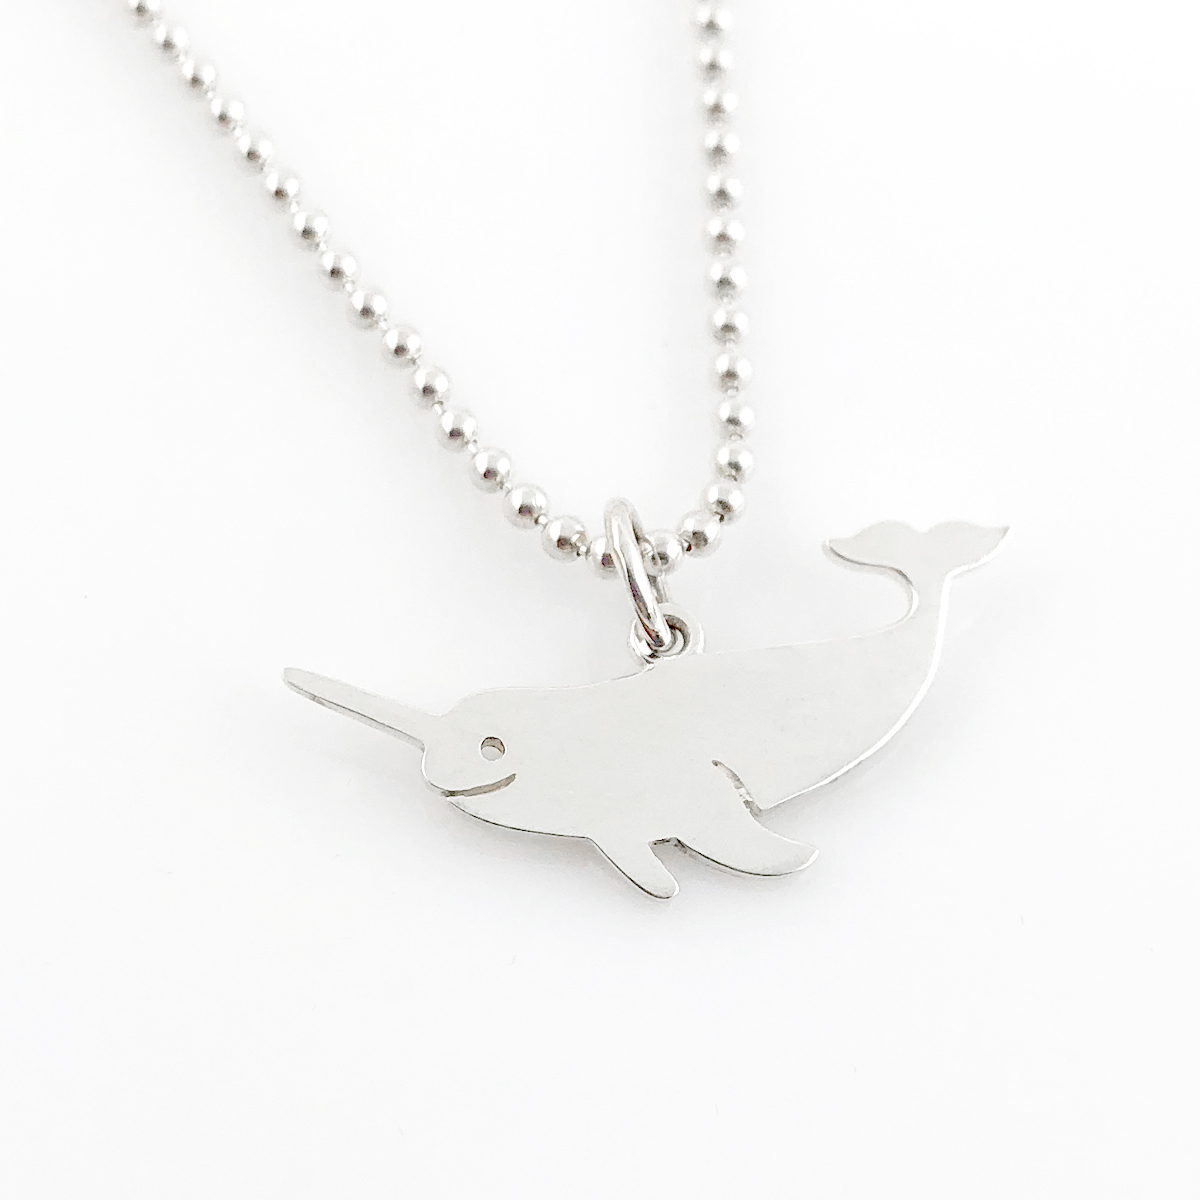 Narwhal Simple Charm Necklace (Ready to Ship)